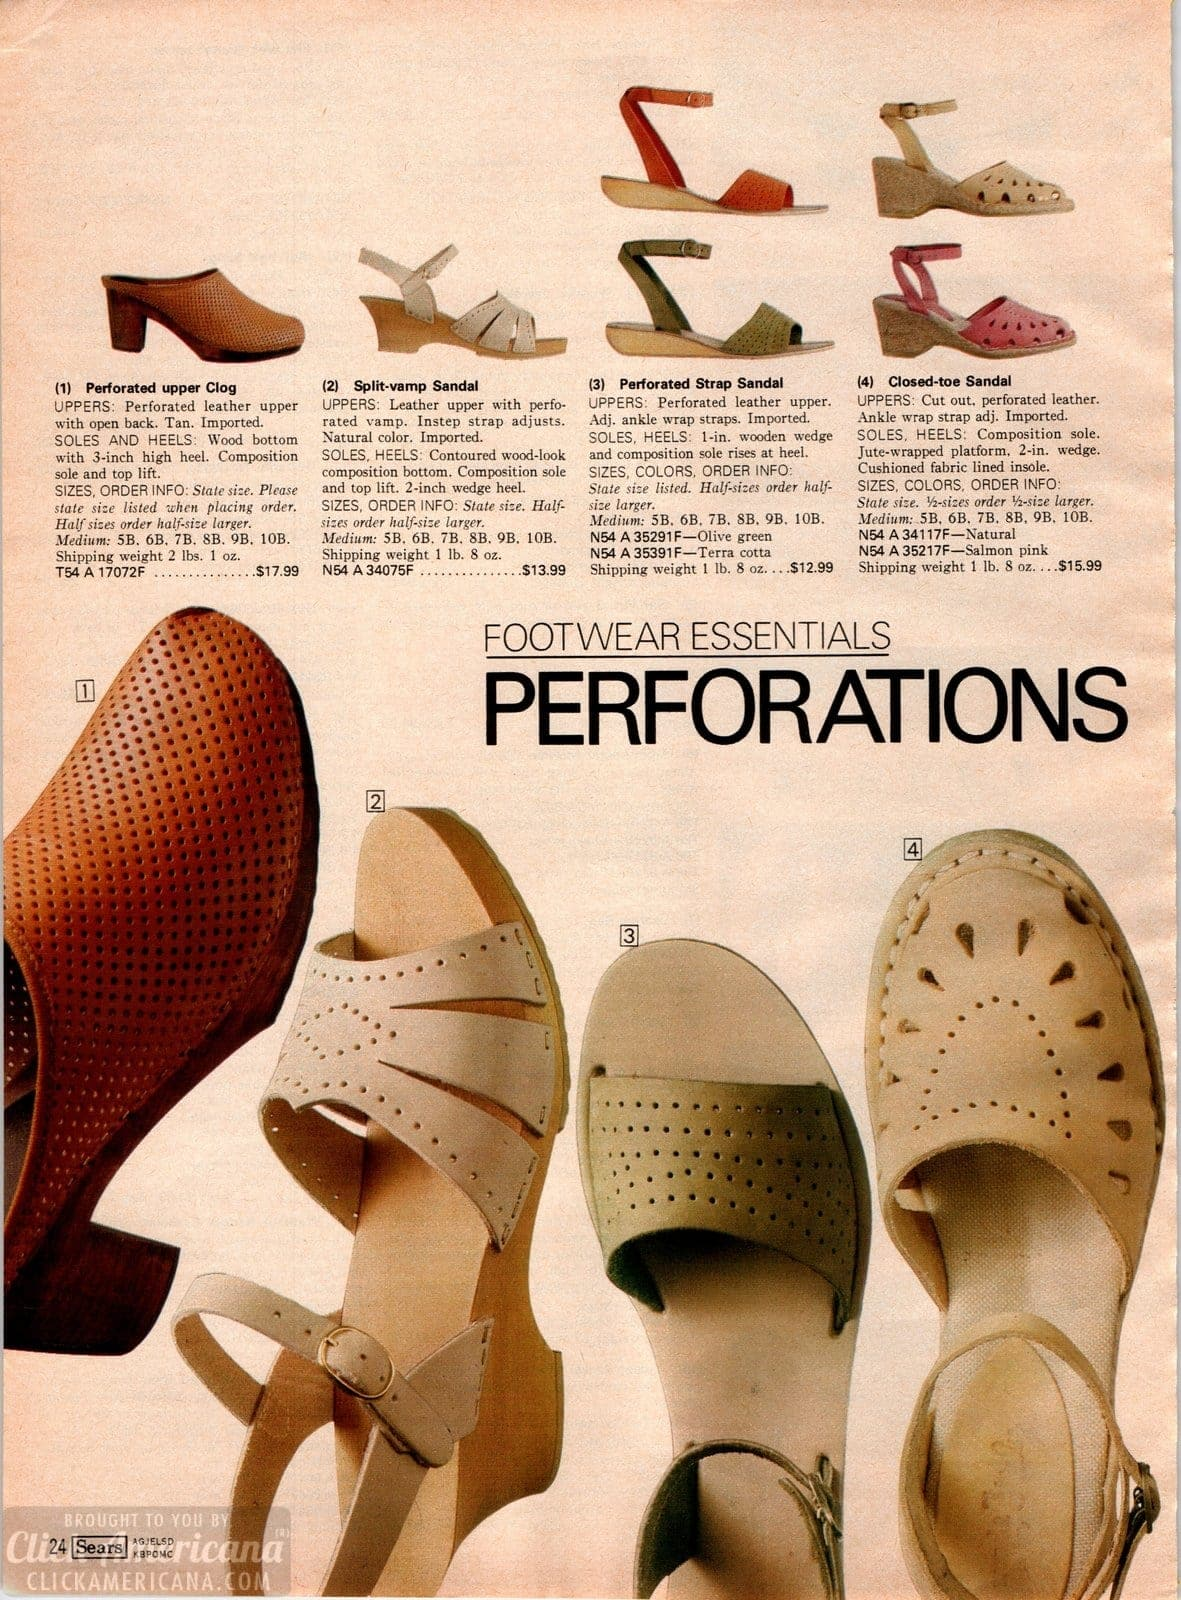 Stylish perforated shoes for women from the 70s - sandals and clogs